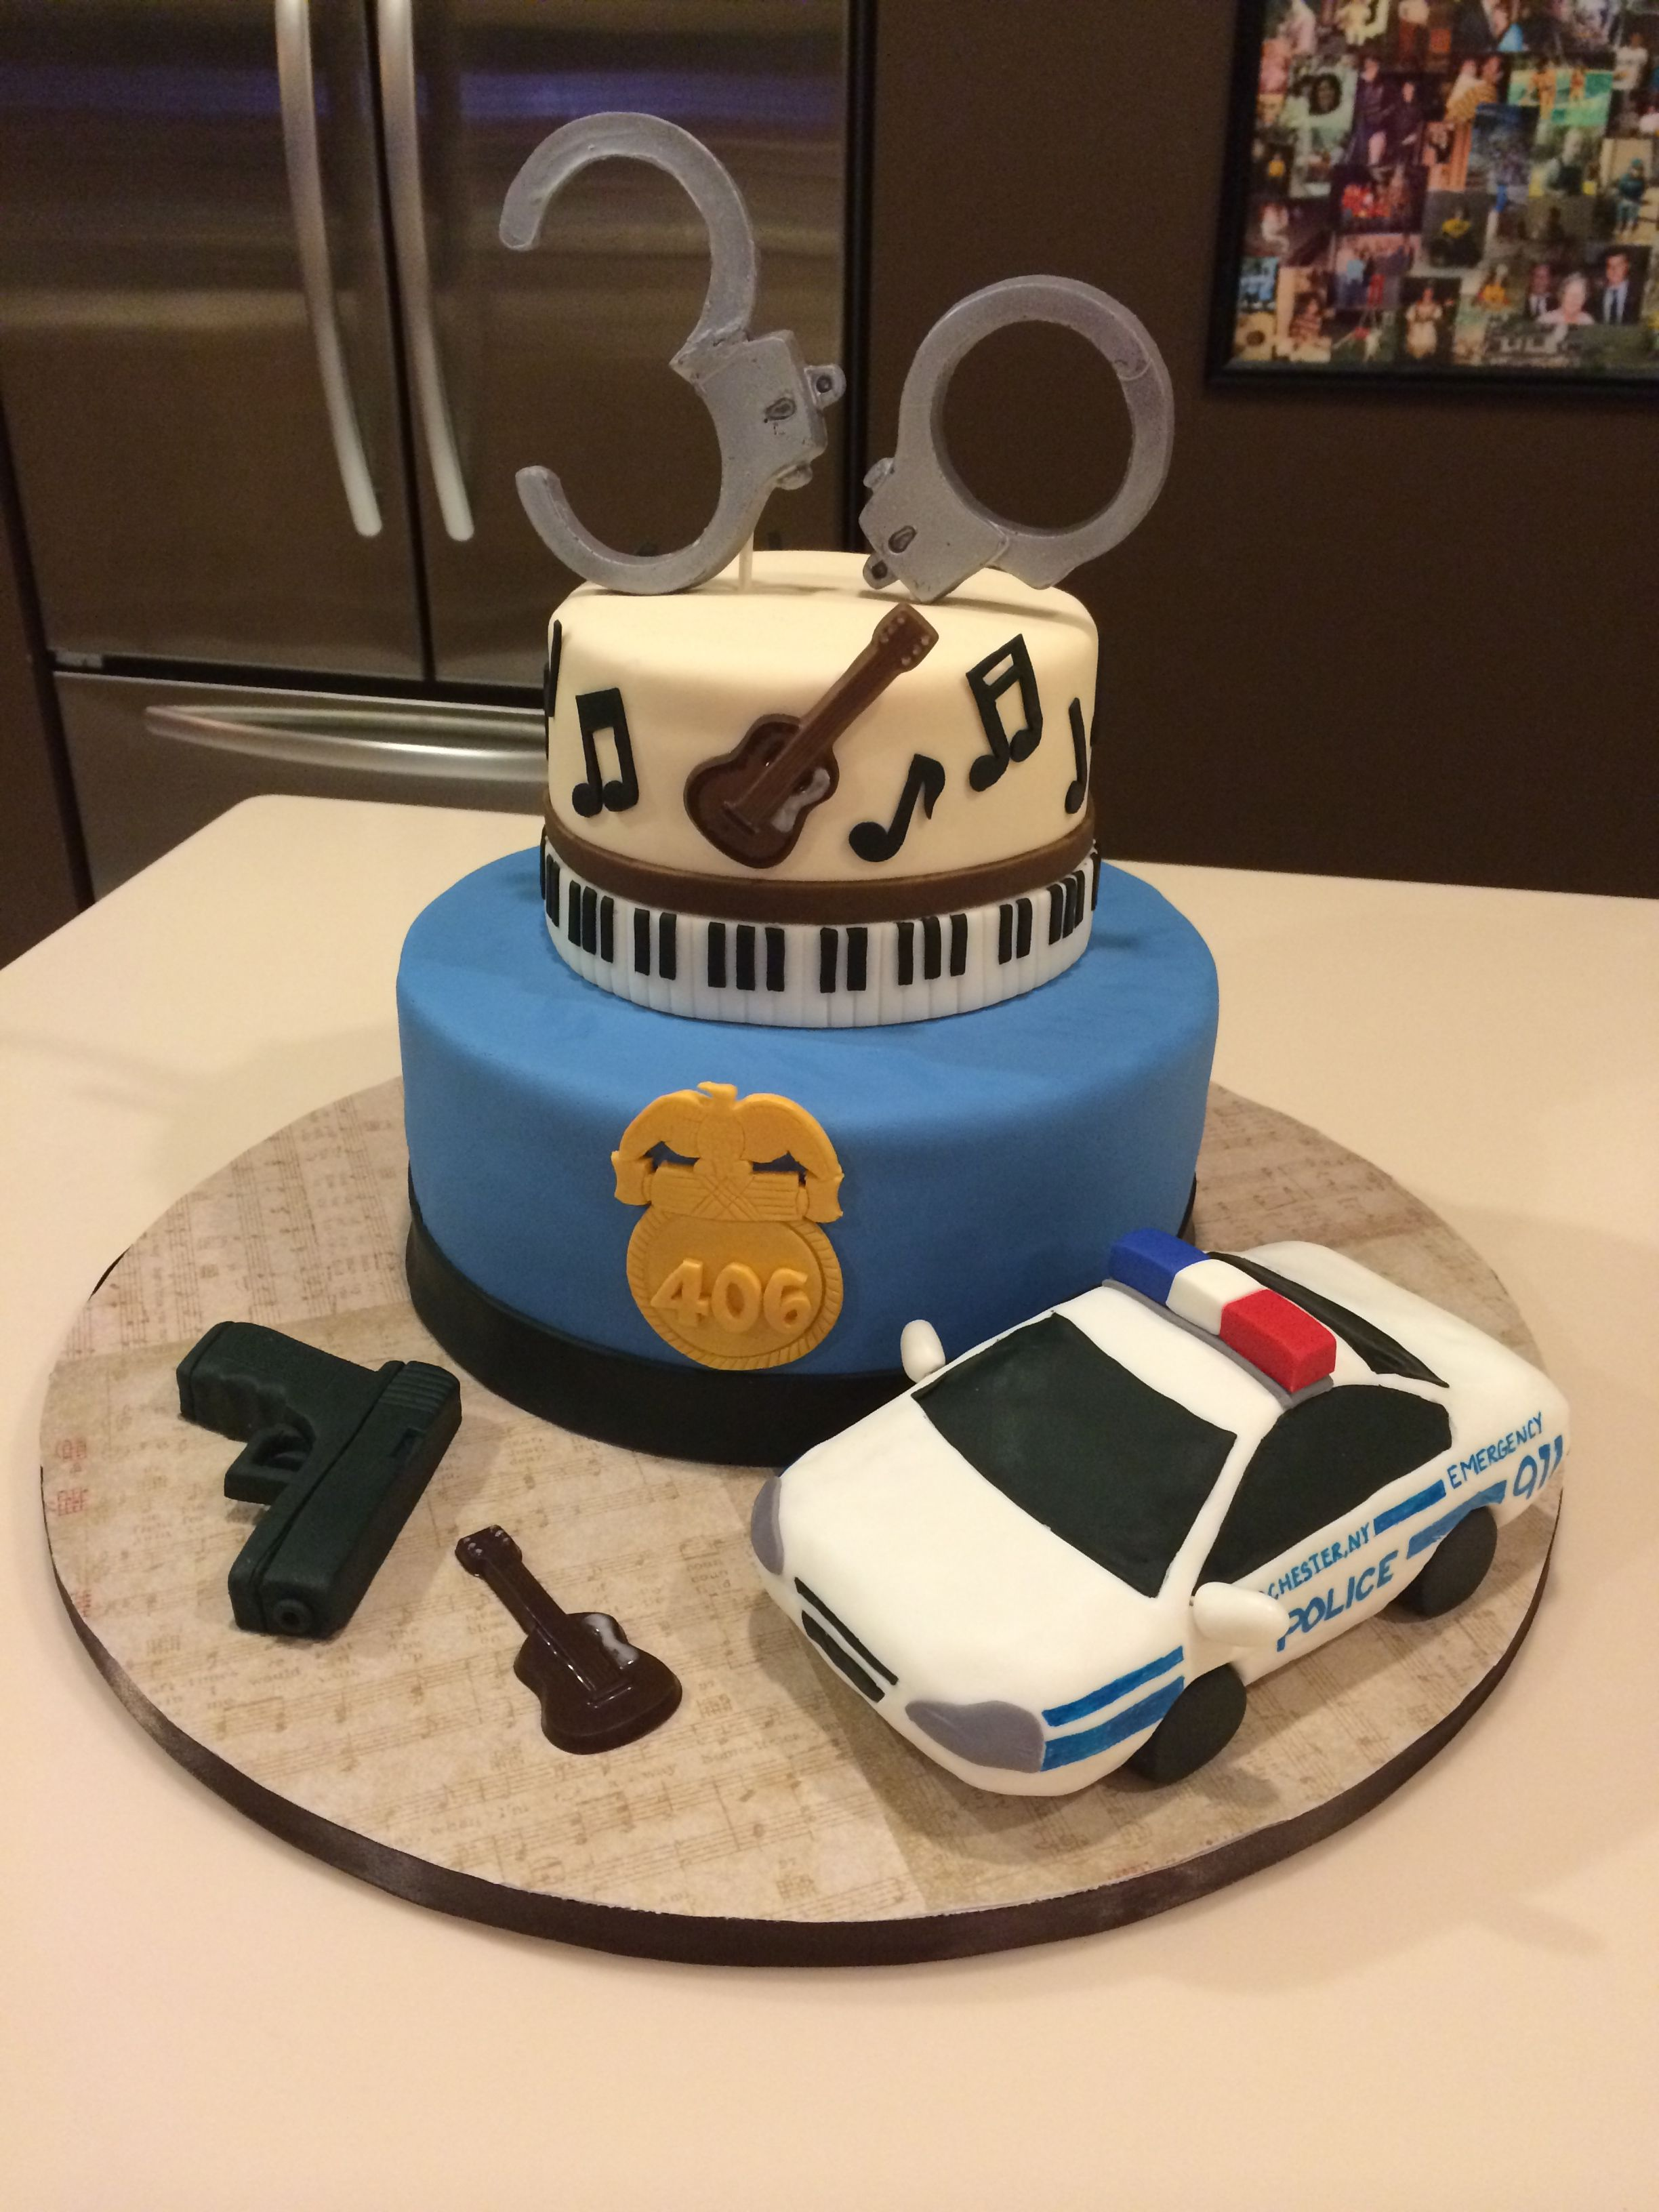 Magnificent Birthday Cake Decorating Ideas For A Policeman The Cake Boutique Funny Birthday Cards Online Alyptdamsfinfo